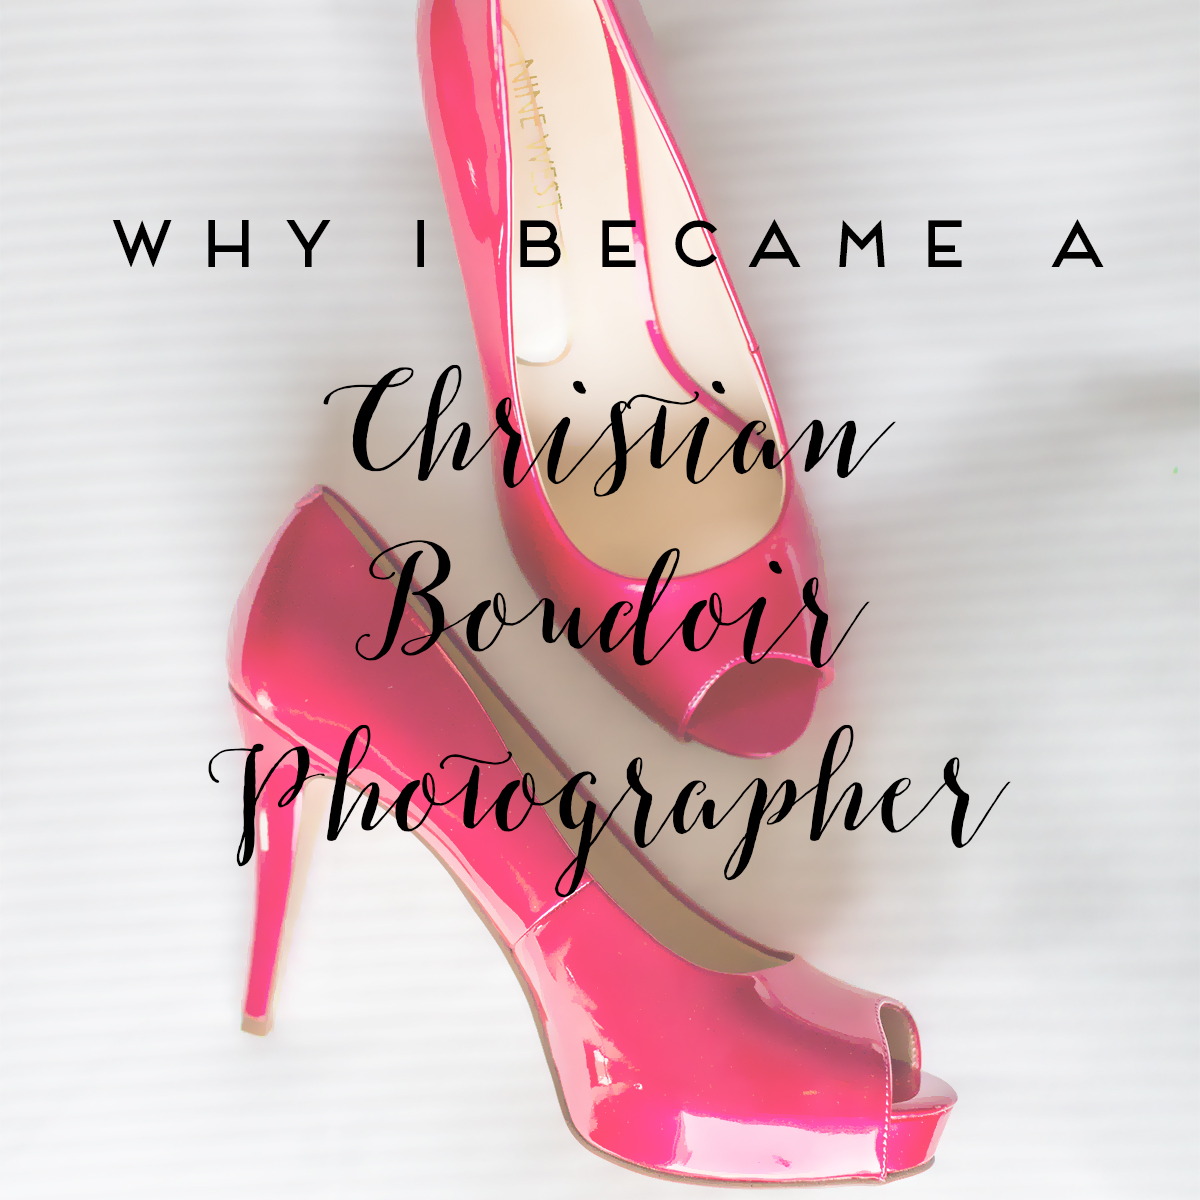 christian-boudoir-photographer